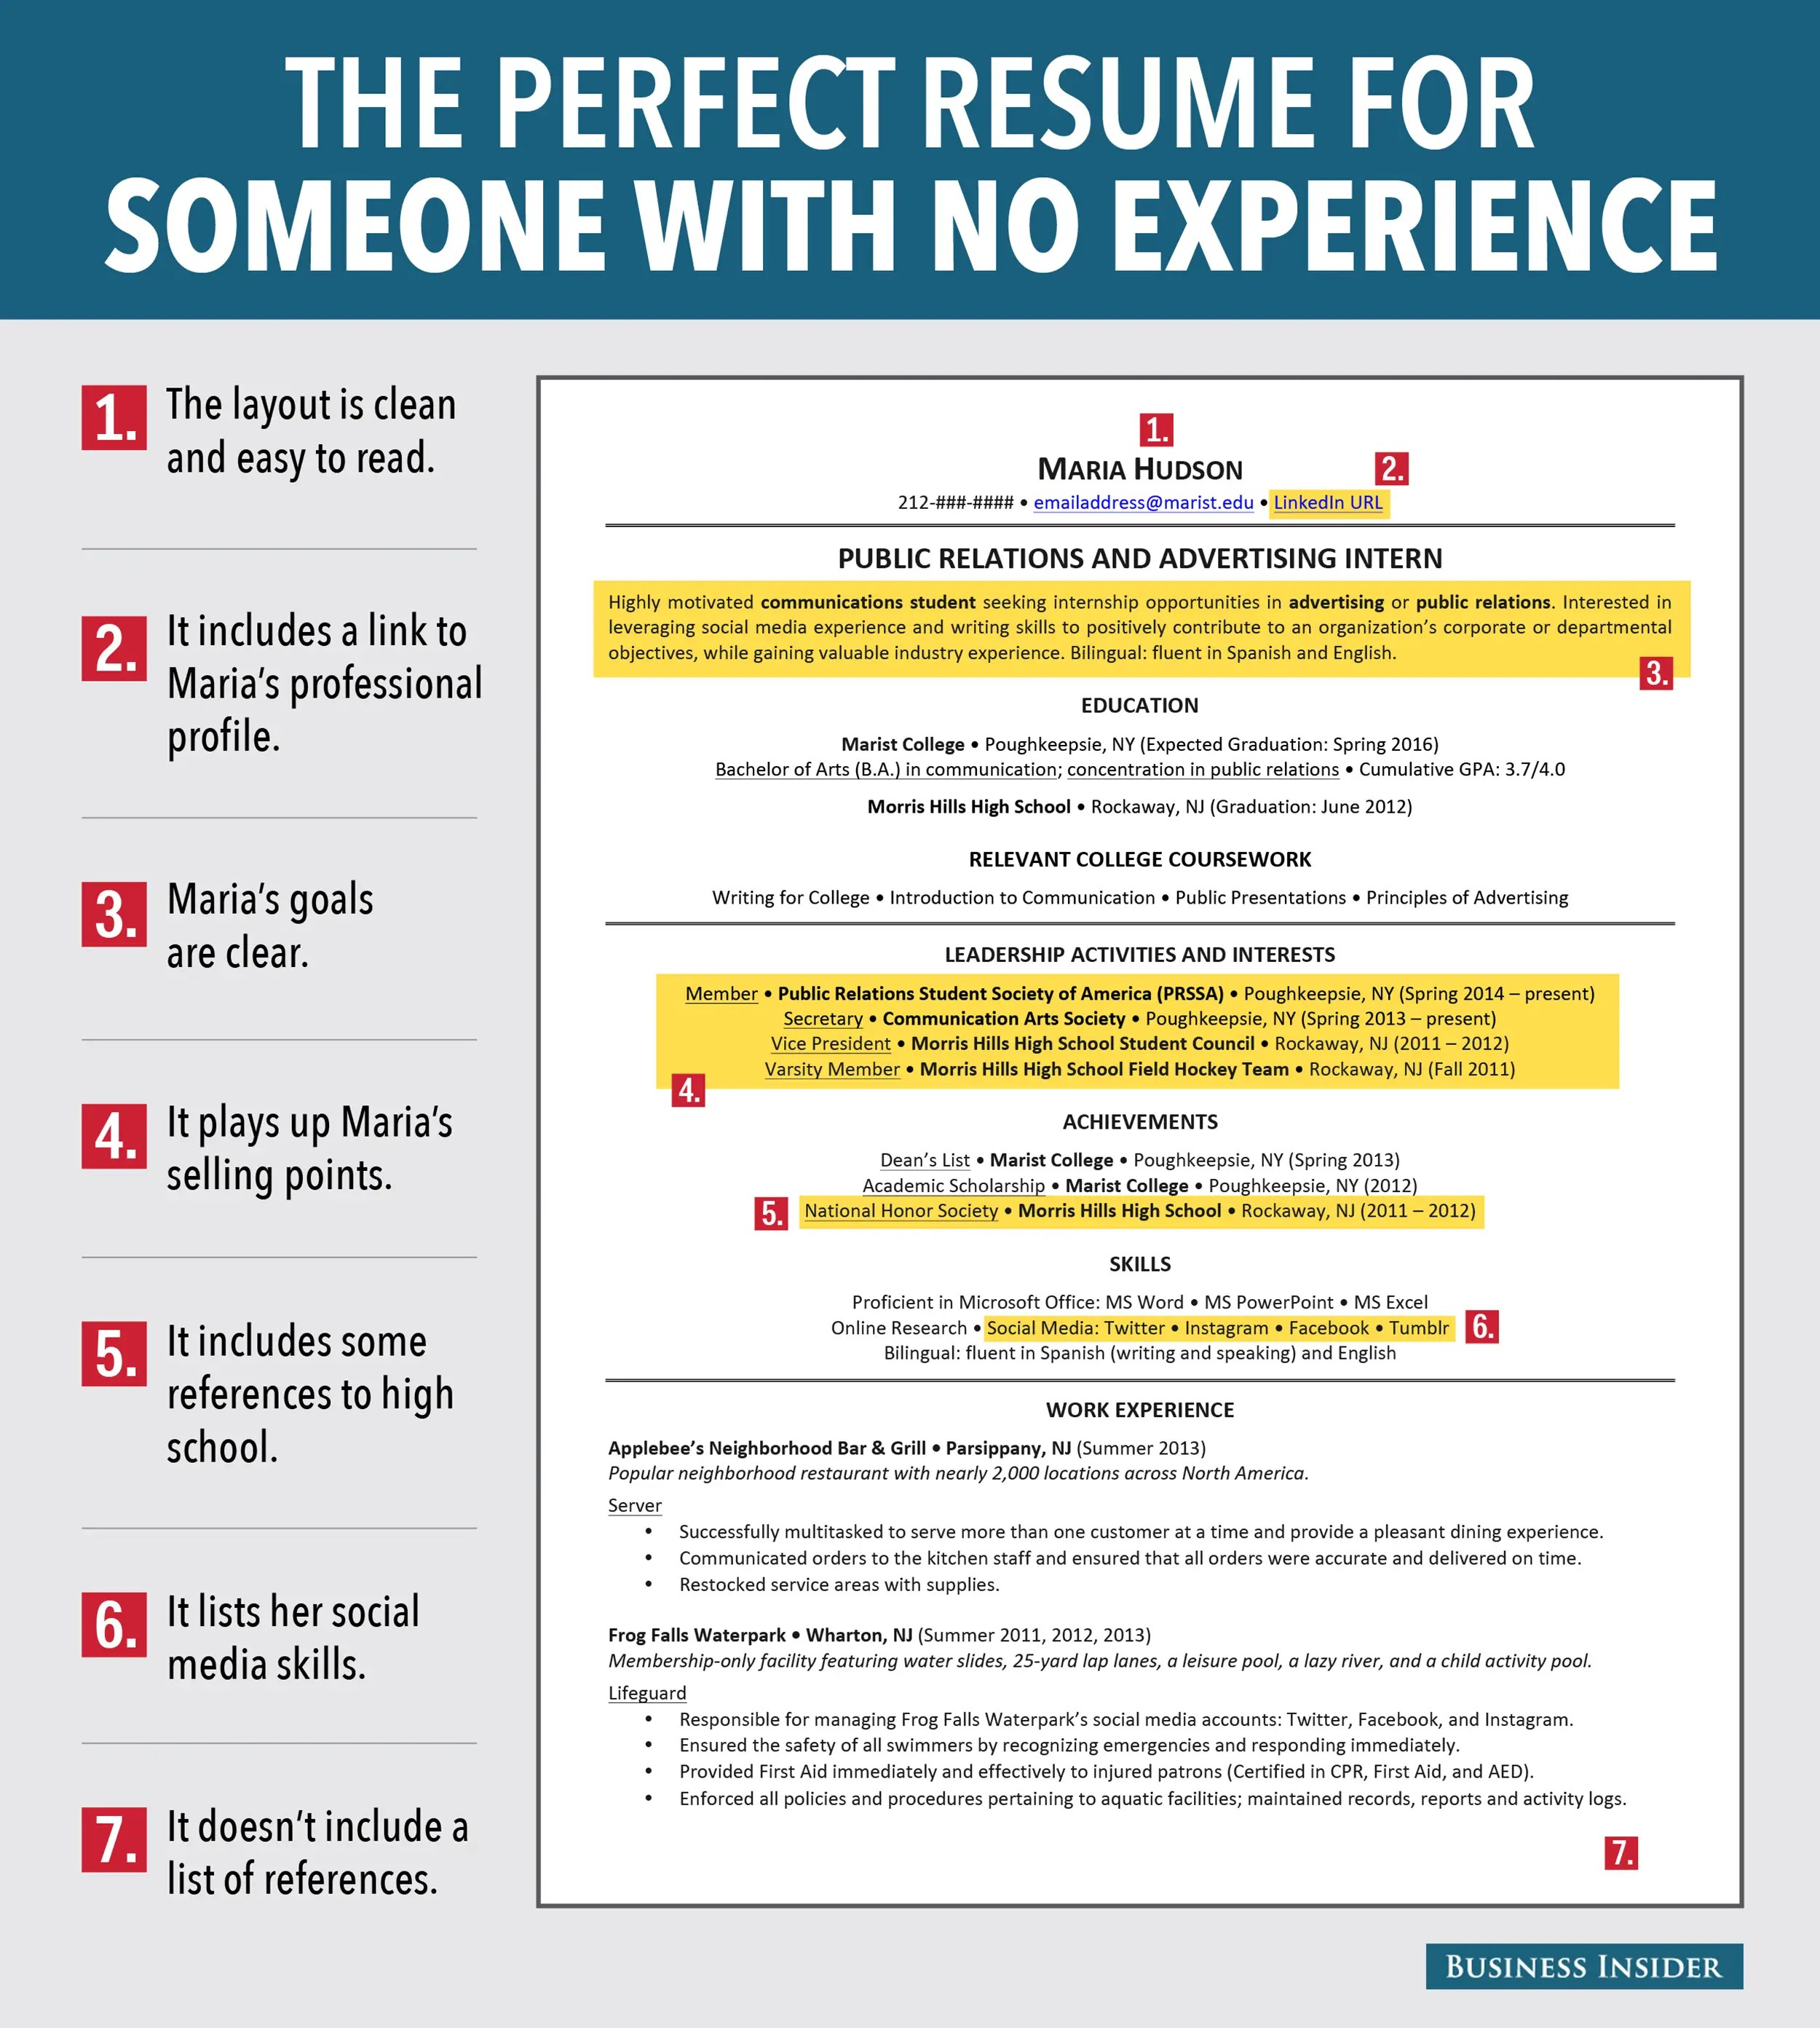 Resume For Job Seeker With No Experience - Business Insider - resume for students with no experience